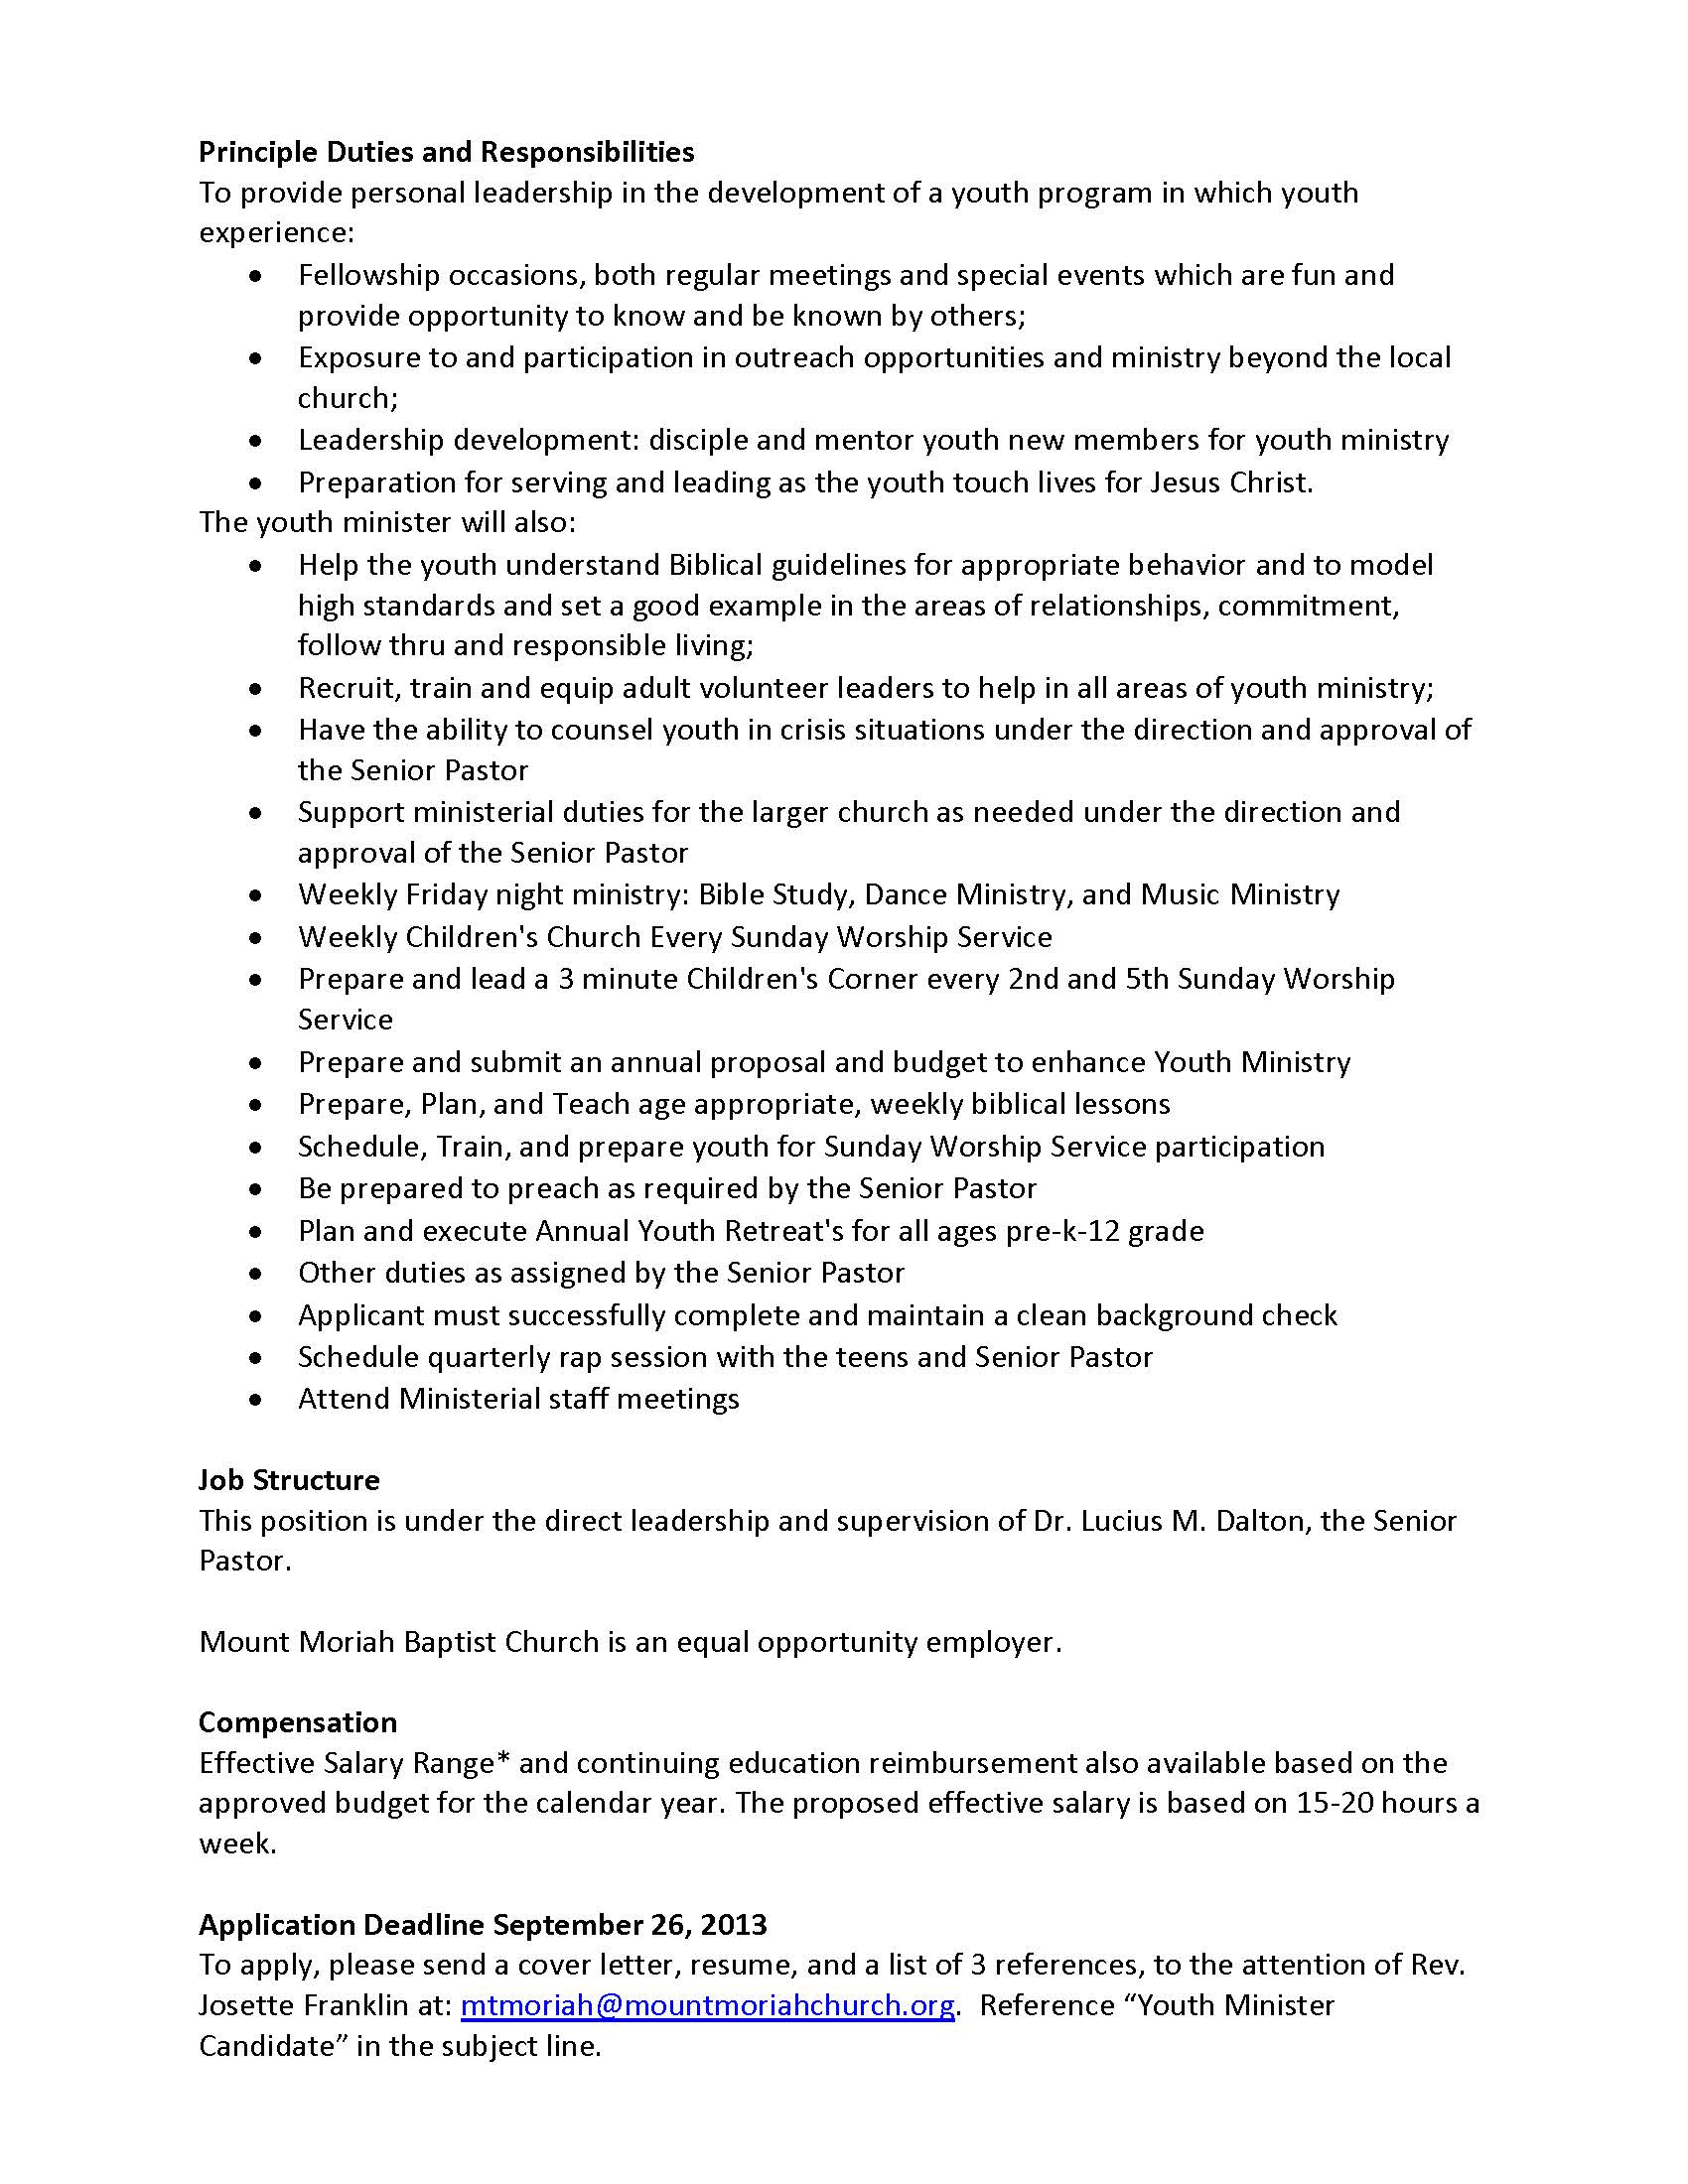 mmbc youth minister position description revised 8 29 20131_page_2 - Sample Pastoral Resume